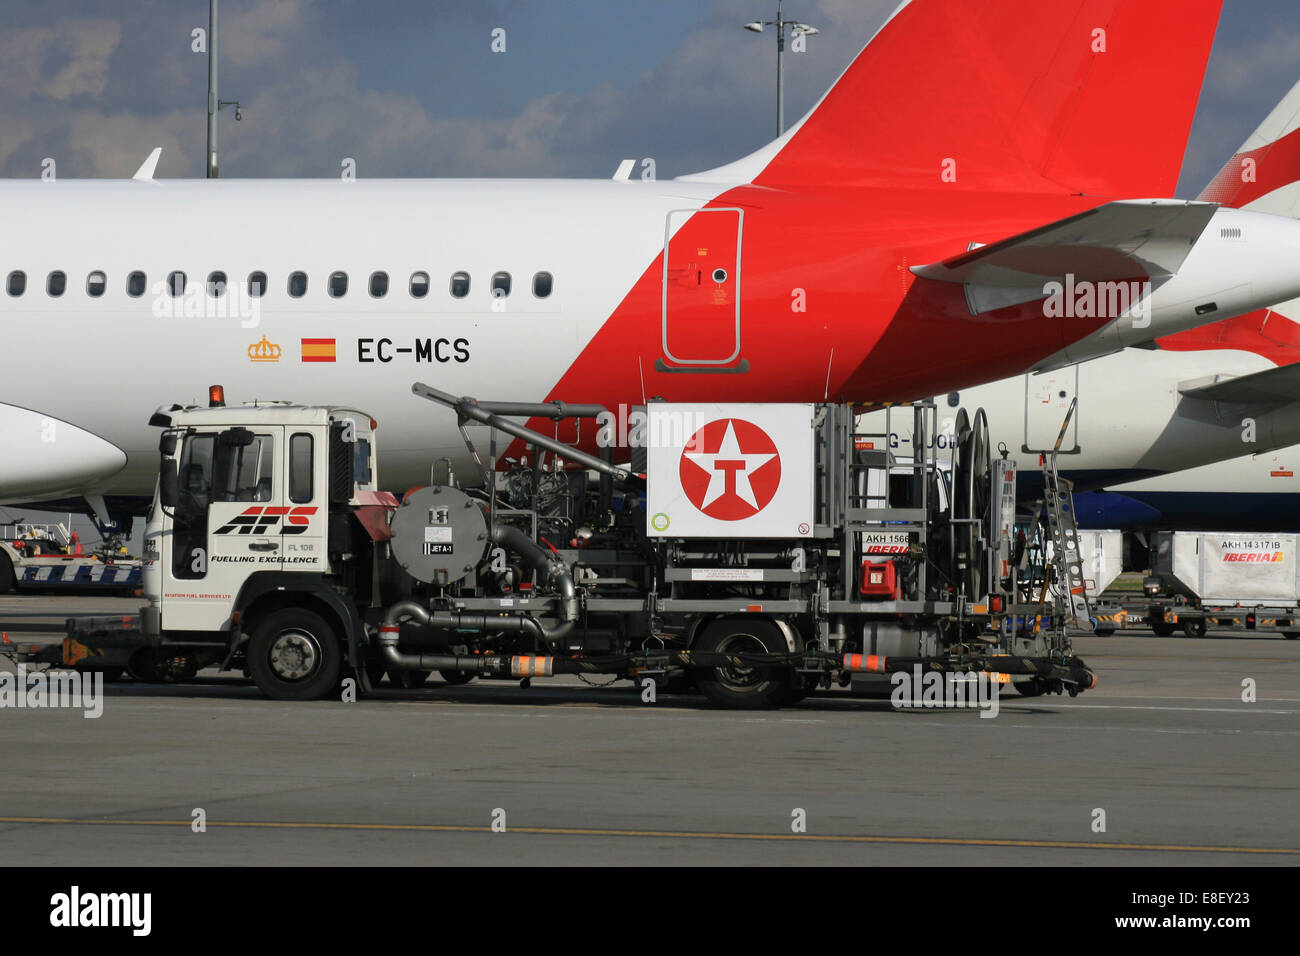 AFS AVIATION FUELLING SERVICES - Stock Image